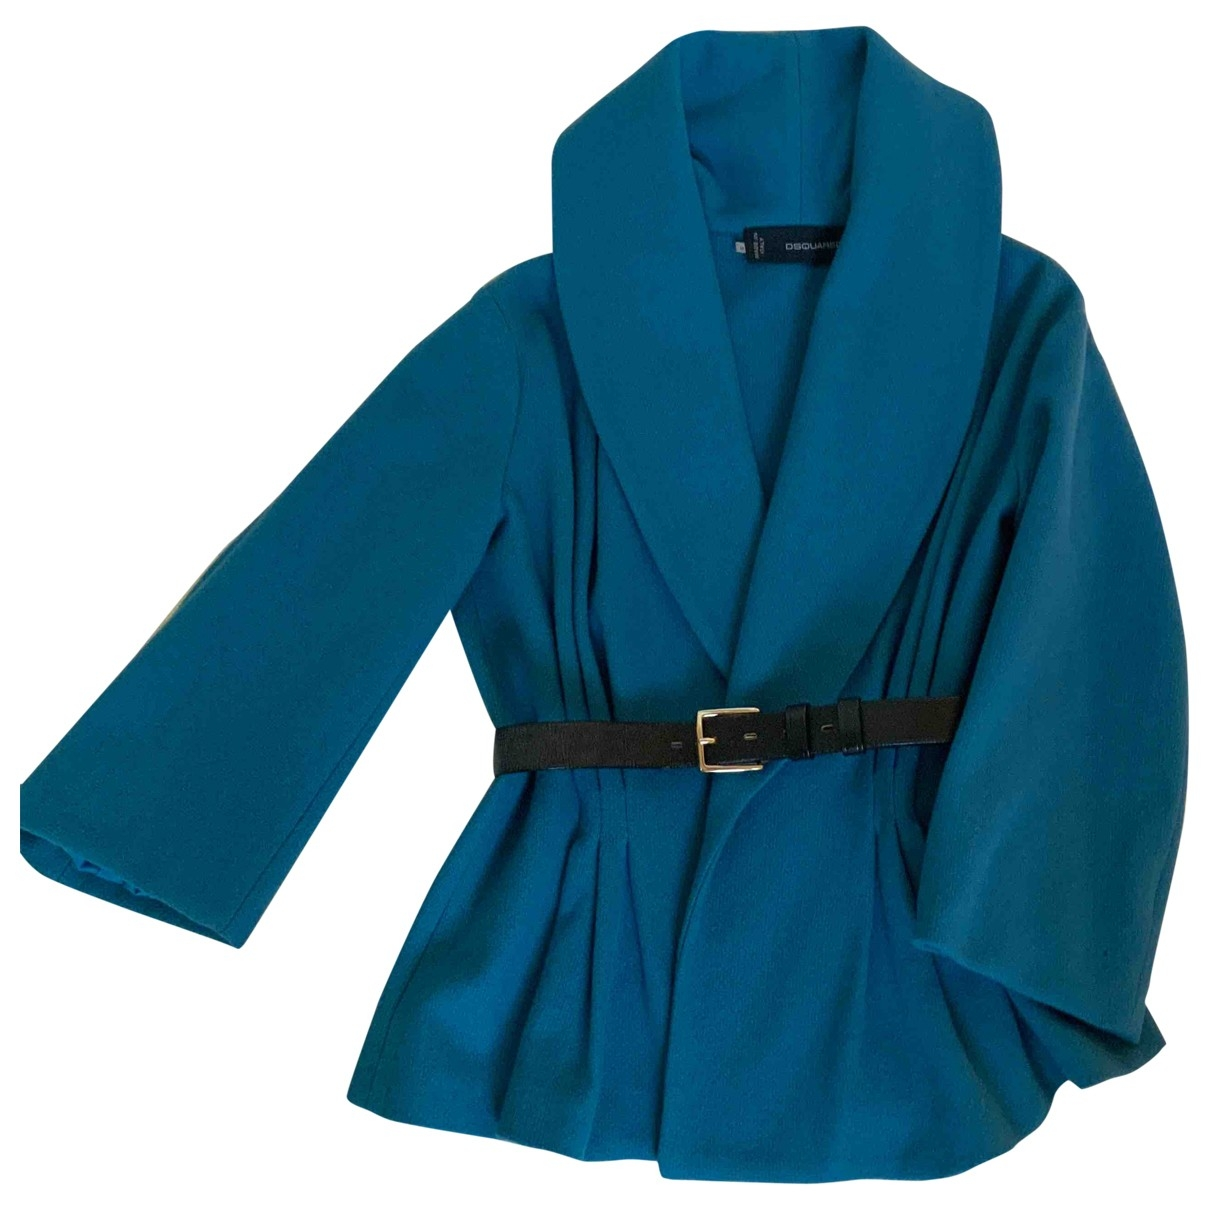 Dsquared2 \N Turquoise Wool jacket for Women M International